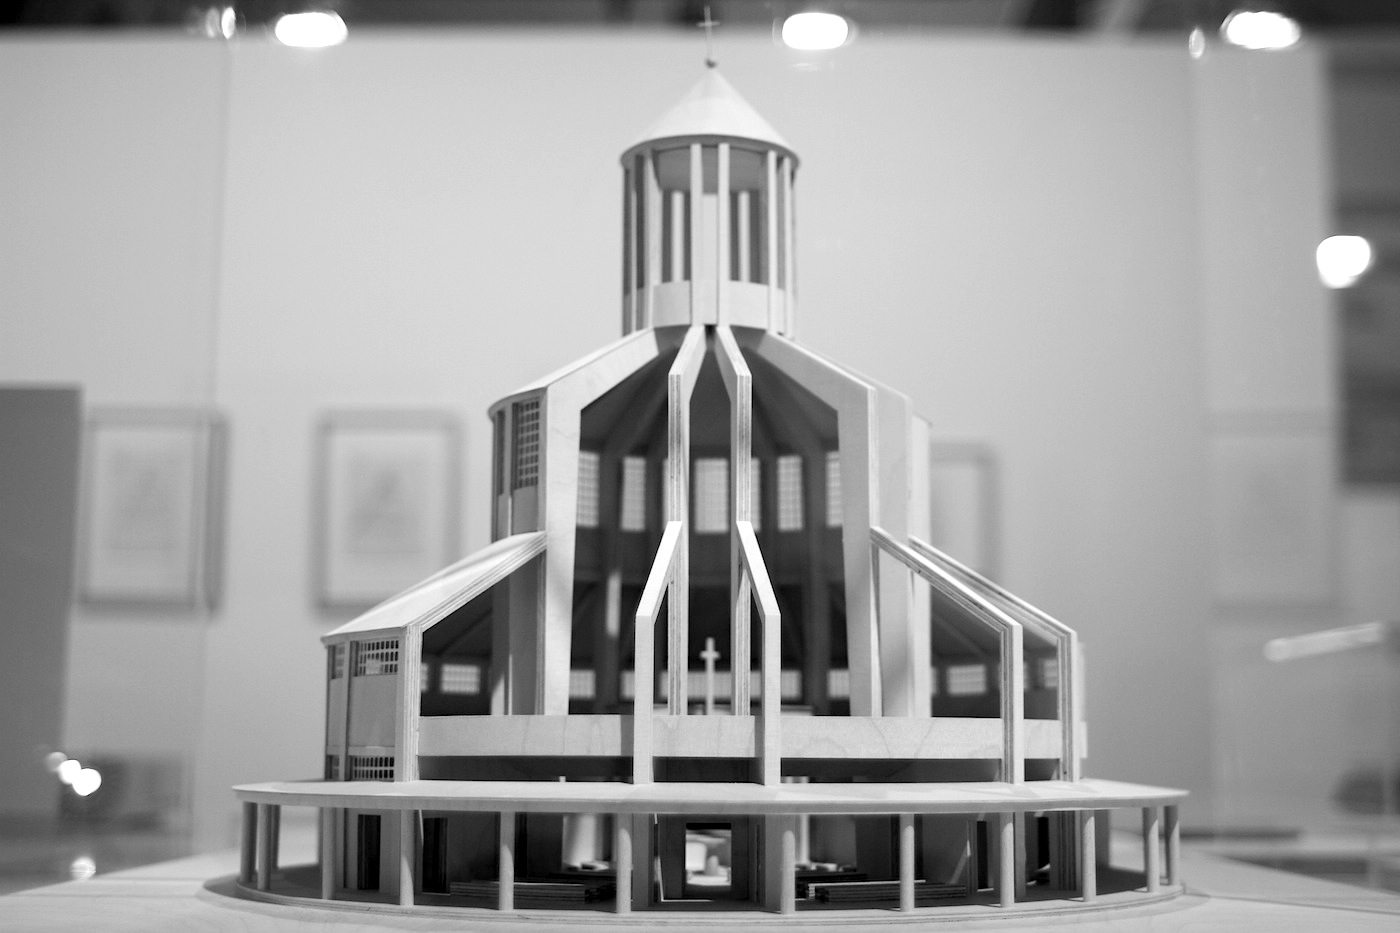 Evangelische Auferstehungskirche (Evangelical Church of the Resurrection).  Model, 2006, Andrea Jensen, Stiftung Deutsches Historisches Museum